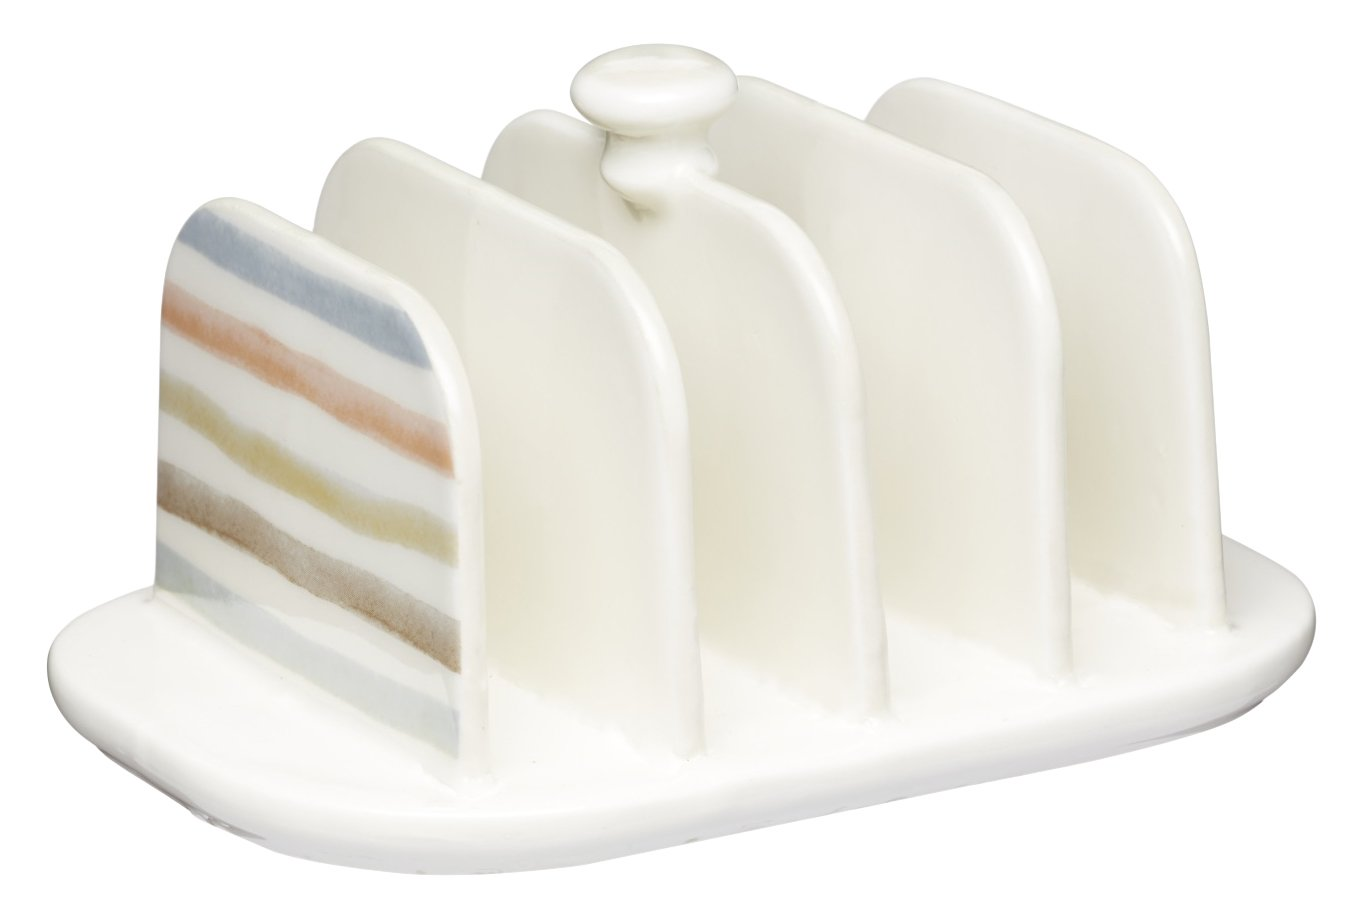 KitchenCraft Classic Collection Vintage-Style Ceramic Toast Rack - Cream KCCCTOAST